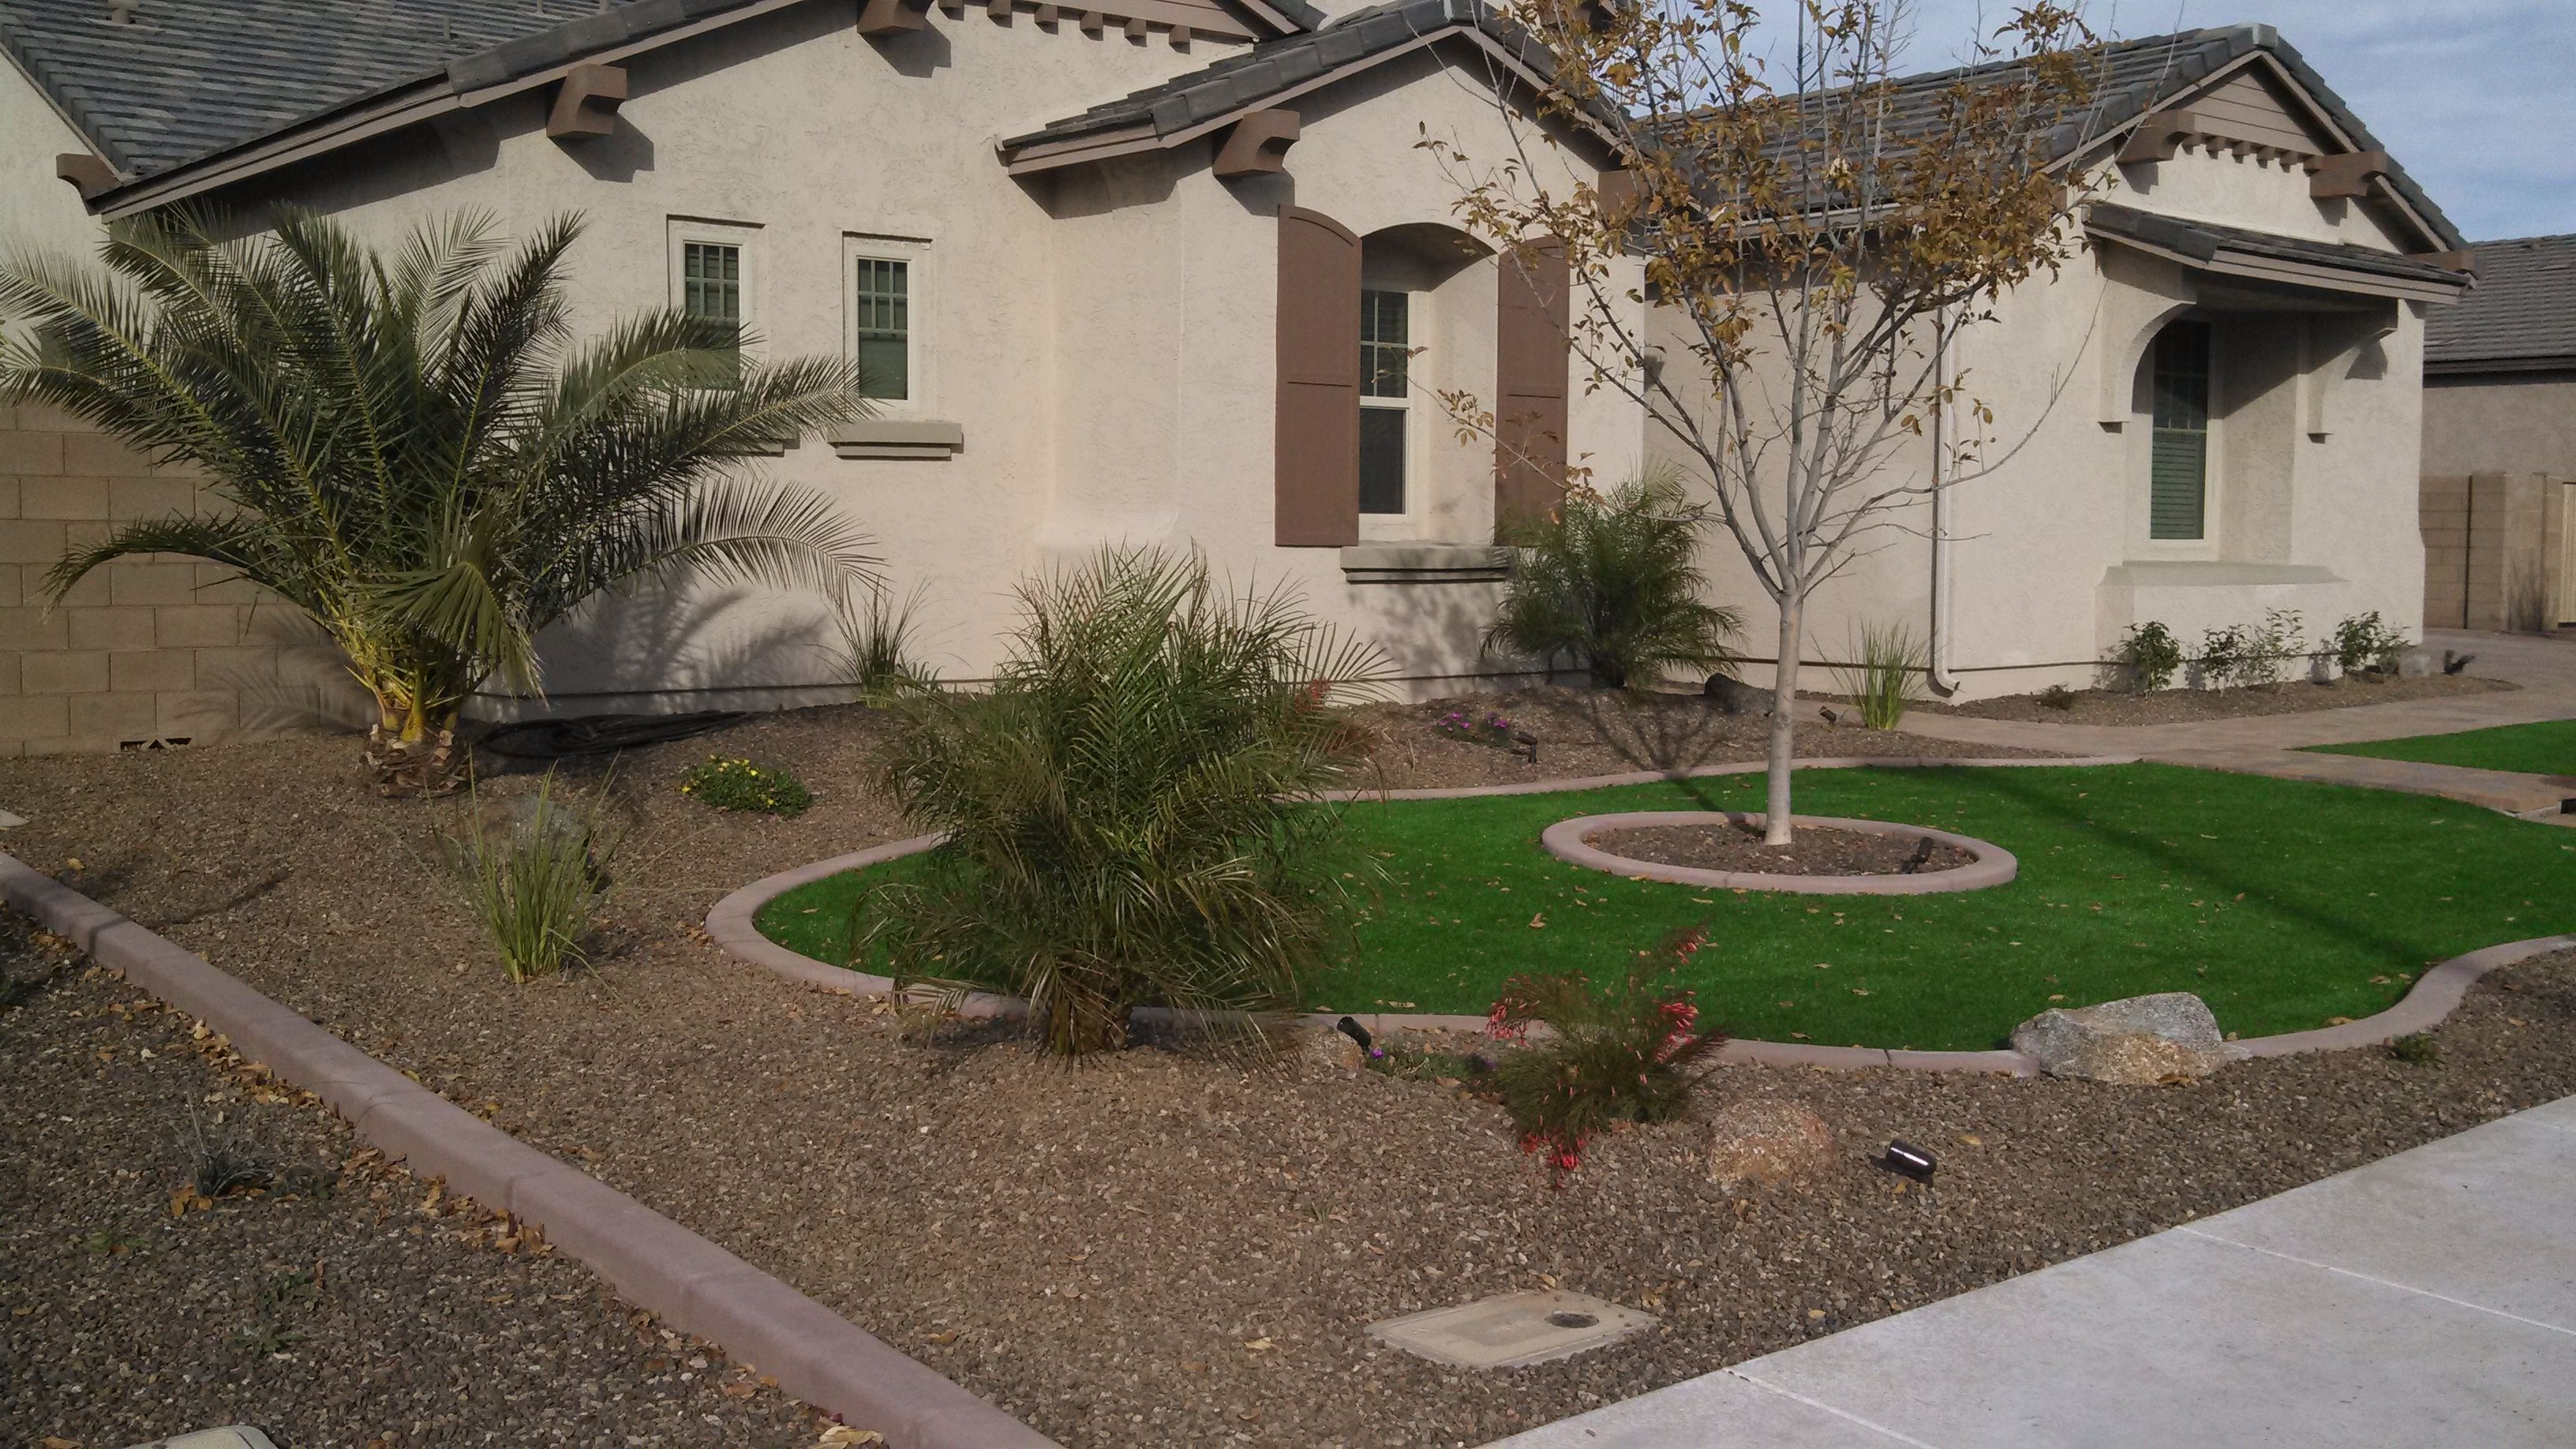 Desert Landscaping Ideas With Pavers And Artificial Turf